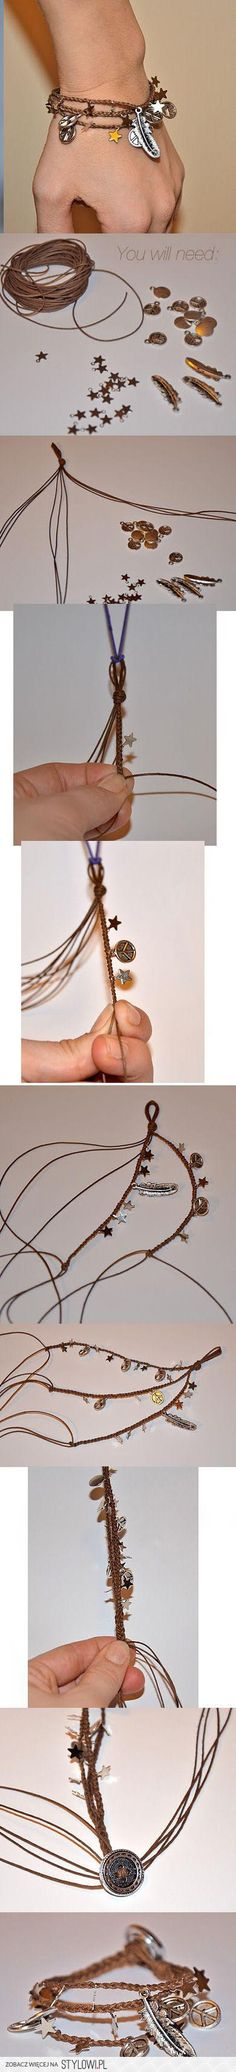 DIY: cord and charm bracelet, from the styleowl website, which includes a number of pictorials for homemade jewelry and other lifestyle DIY projects